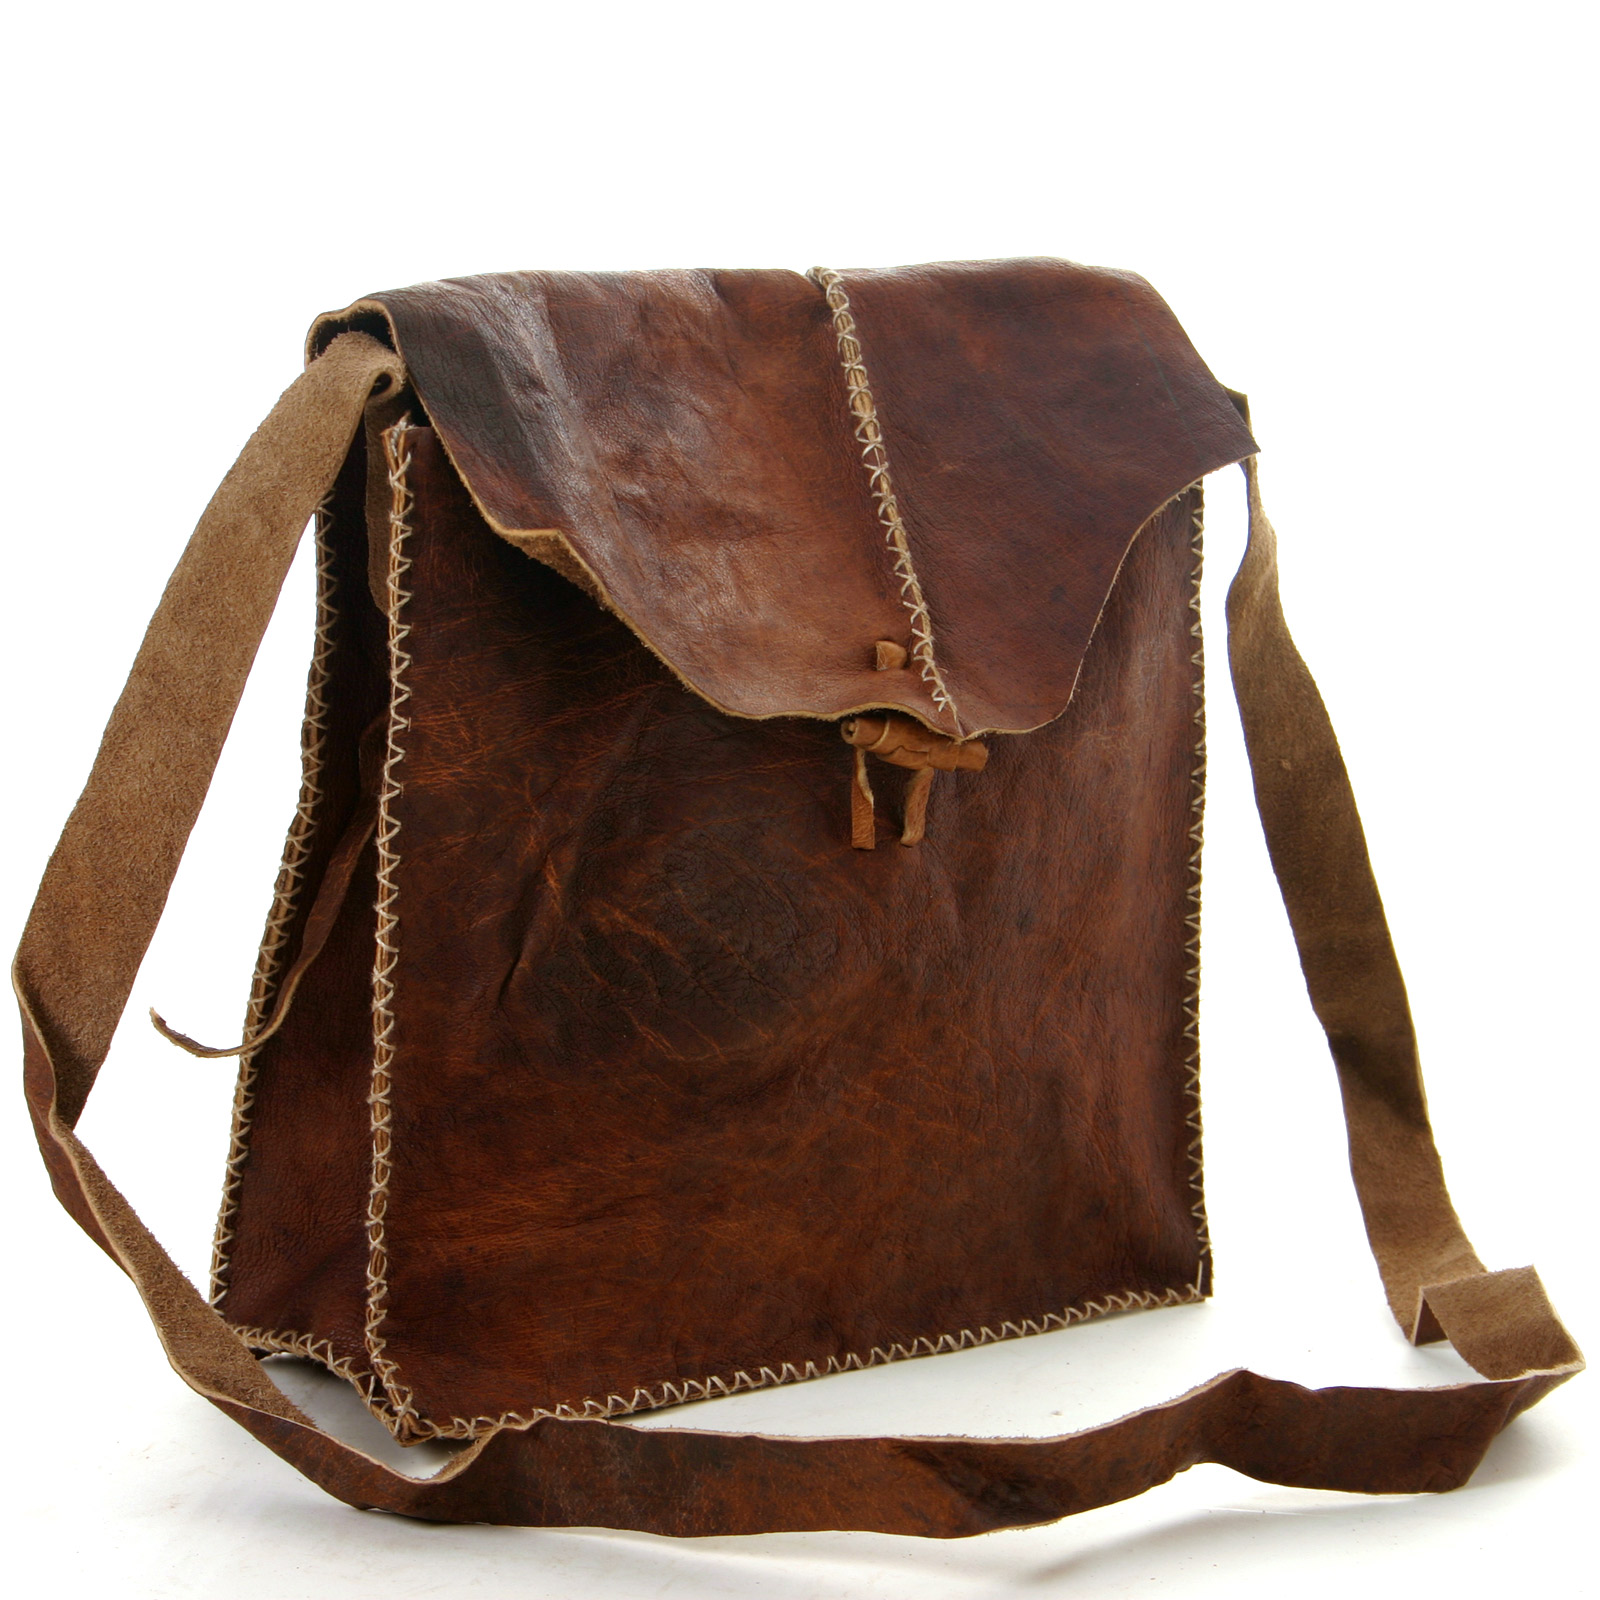 vishes leder tasche umh ngetasche mittelalter messenger leather bag herren ebay. Black Bedroom Furniture Sets. Home Design Ideas